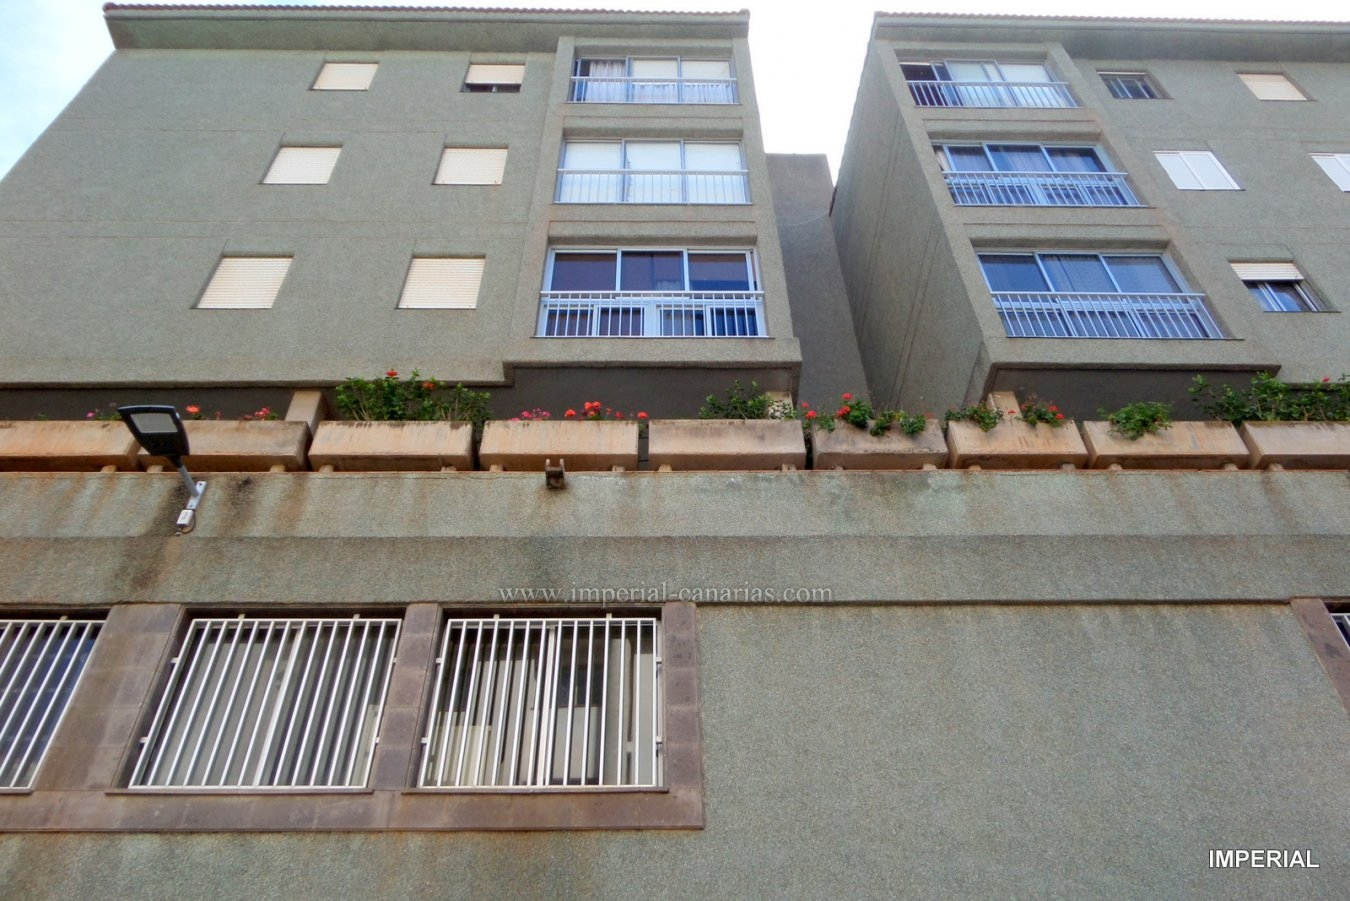 Two completely renovated joint apartments are sold for € 125,000 each. Located in the center of Pto. De La Cruz.